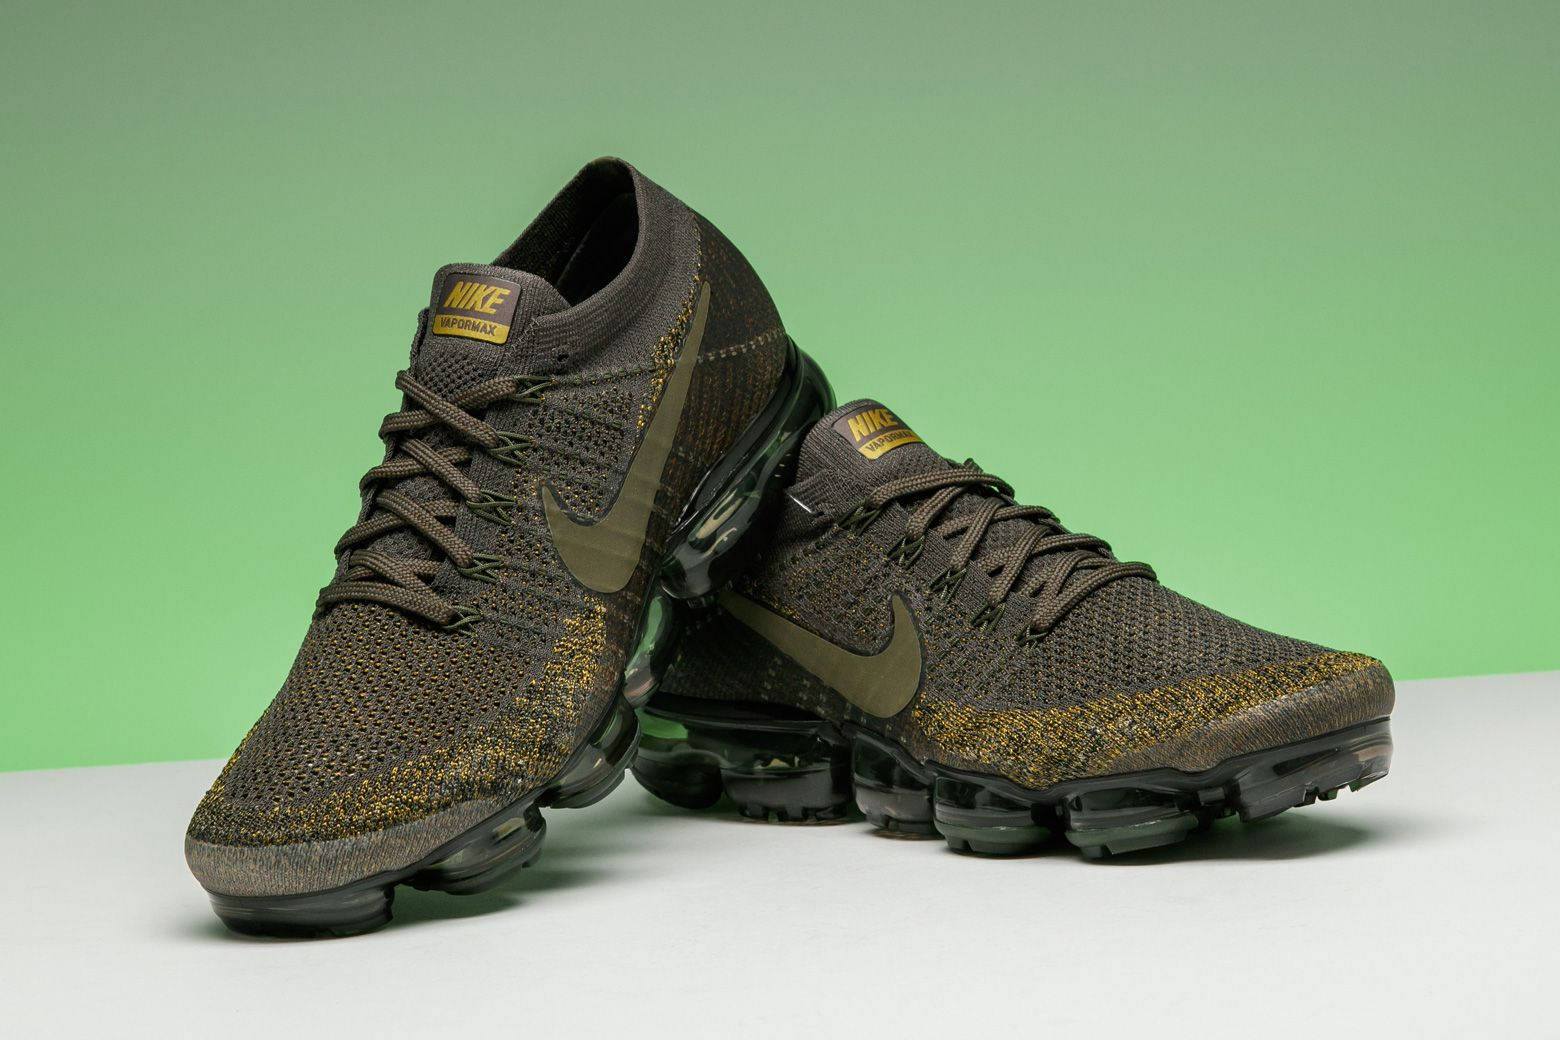 separation shoes 6598a ee9ab Nikelab Air Vapormax Flyknit in 2019 | Nike Air Max | Nike ...